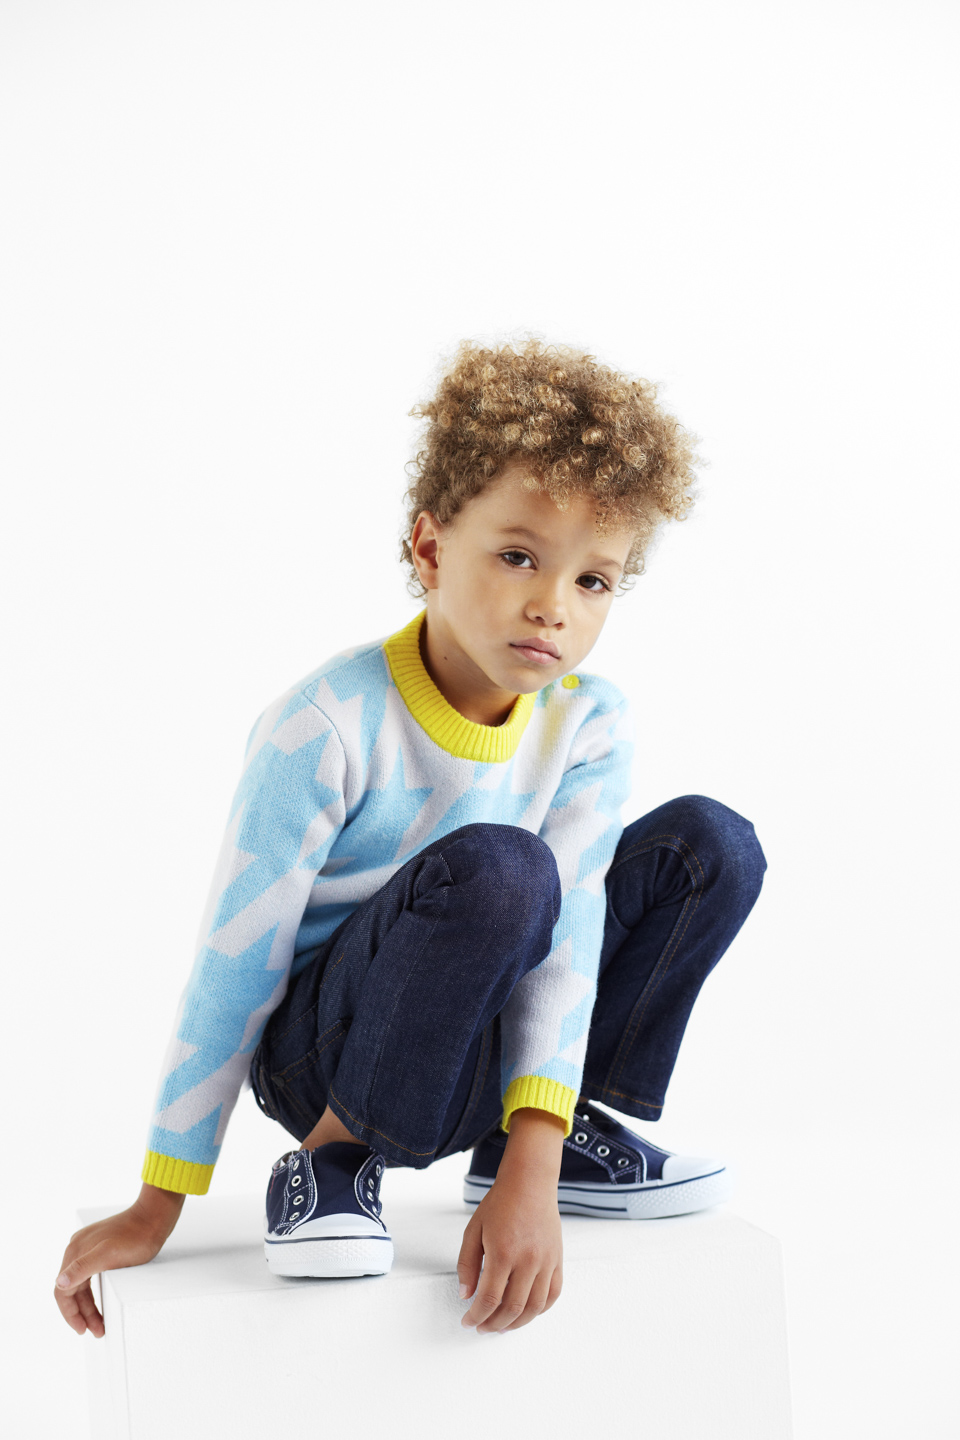 Atelier Child_FW15_The Hound Aqua Sweater_Hi Res.jpg